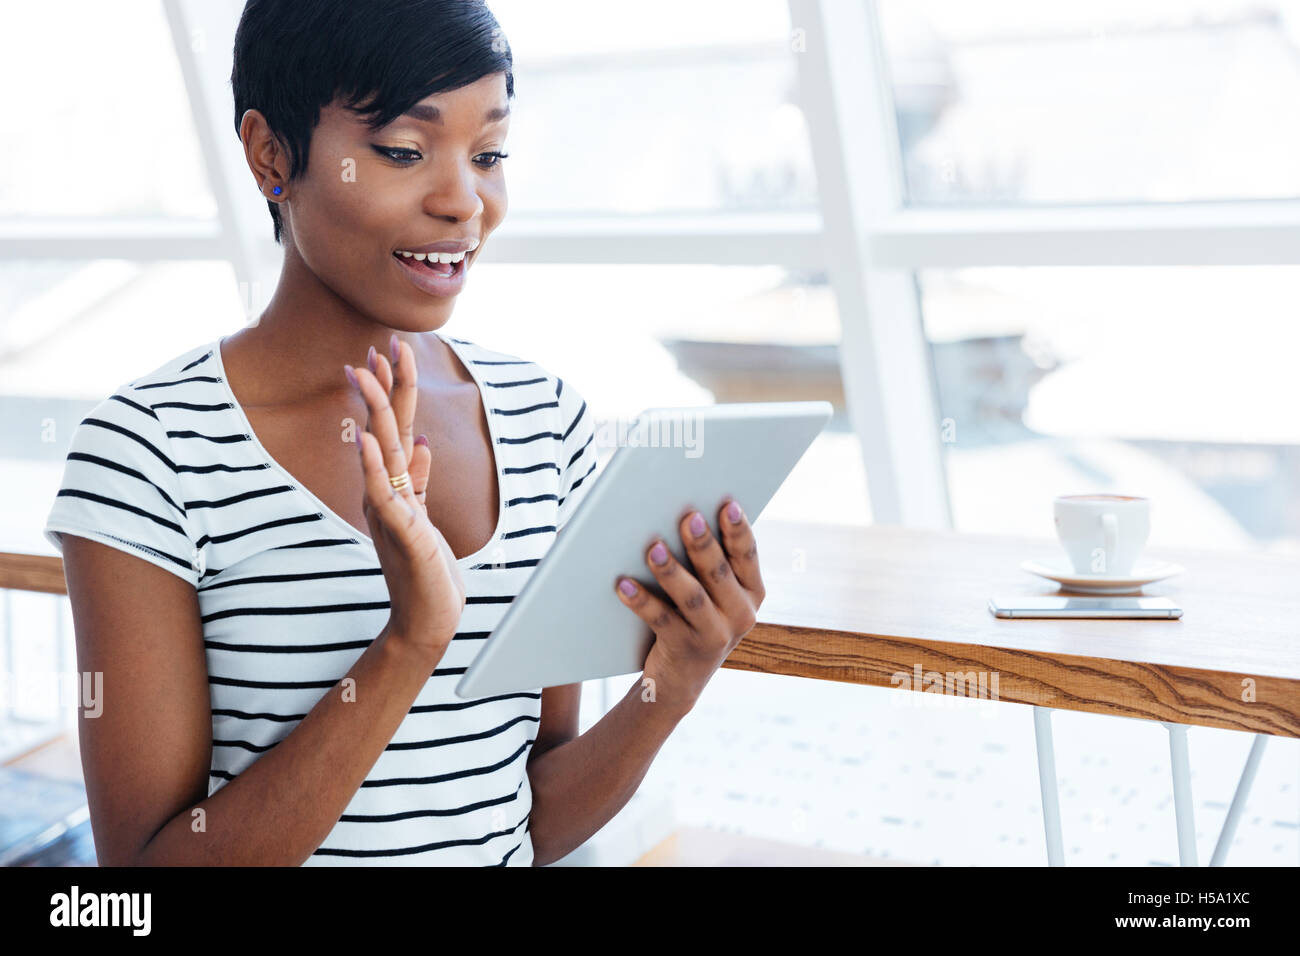 Happy afro american businesswoman holding tablet computer and waving in office - Stock Image